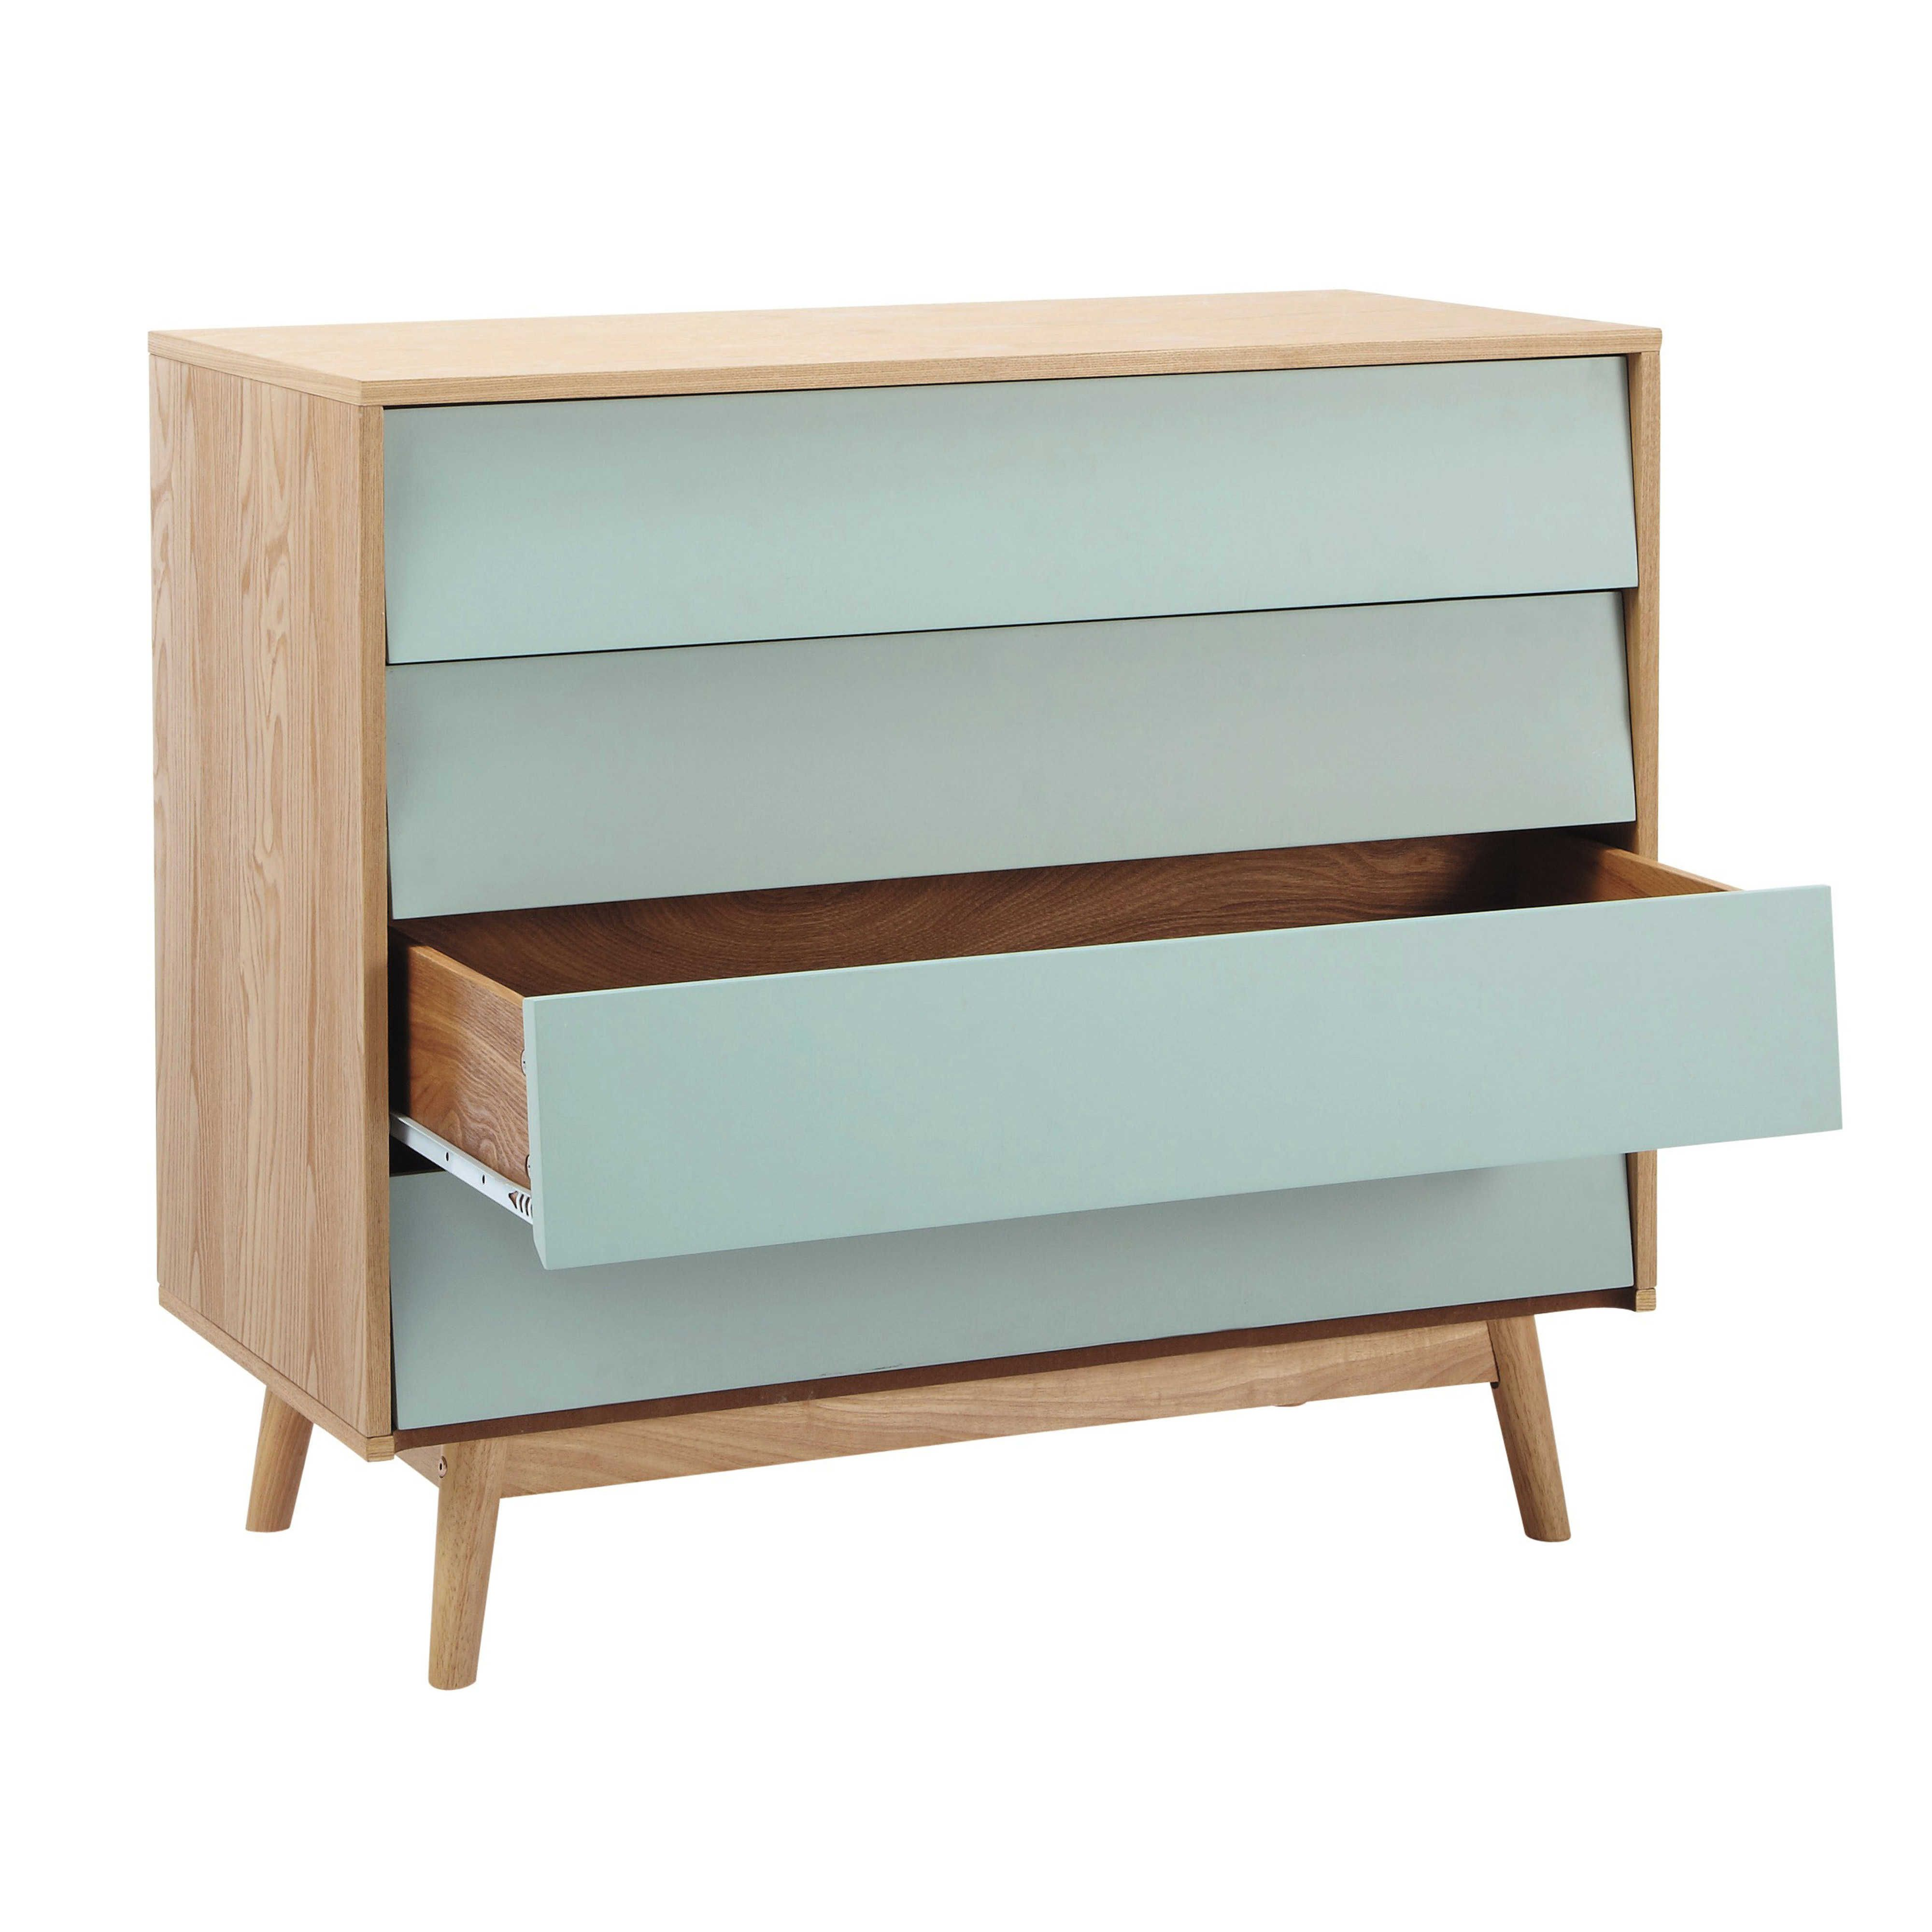 Commode Bleue Maison Du Monde Commodes Et Consoles Estante Vintage Chest Of Drawers Chest Of